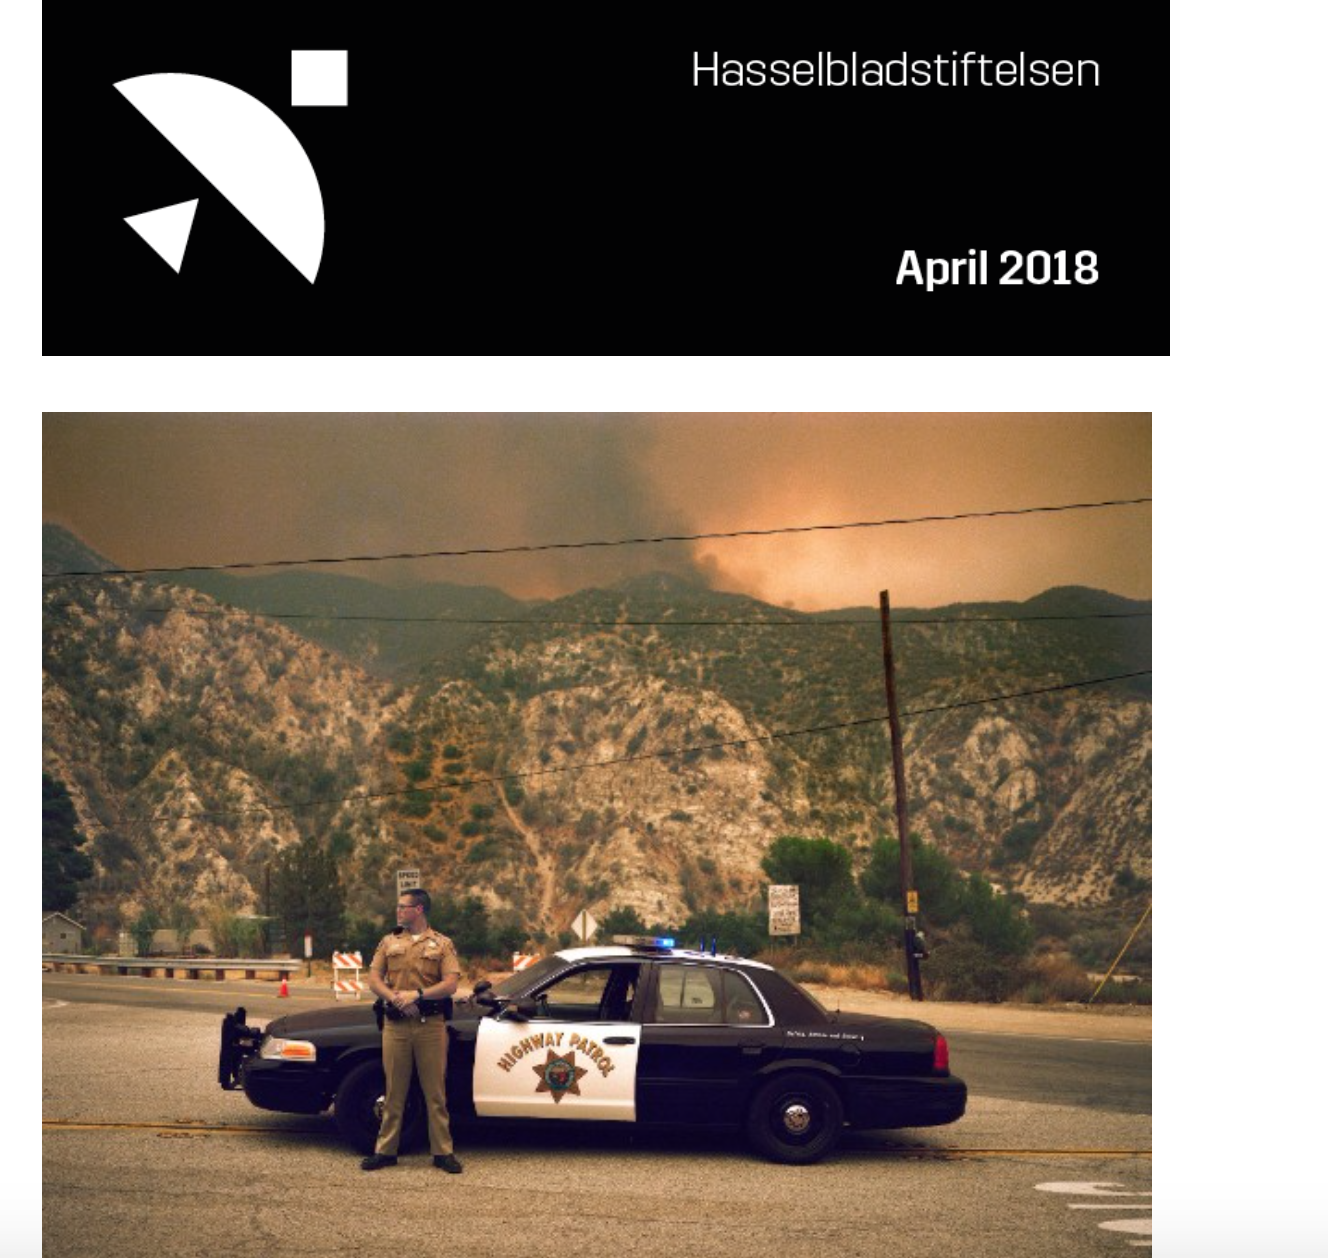 WINNER OF HASSELBLAD BIG PHOTO BOOK GRANT 2018